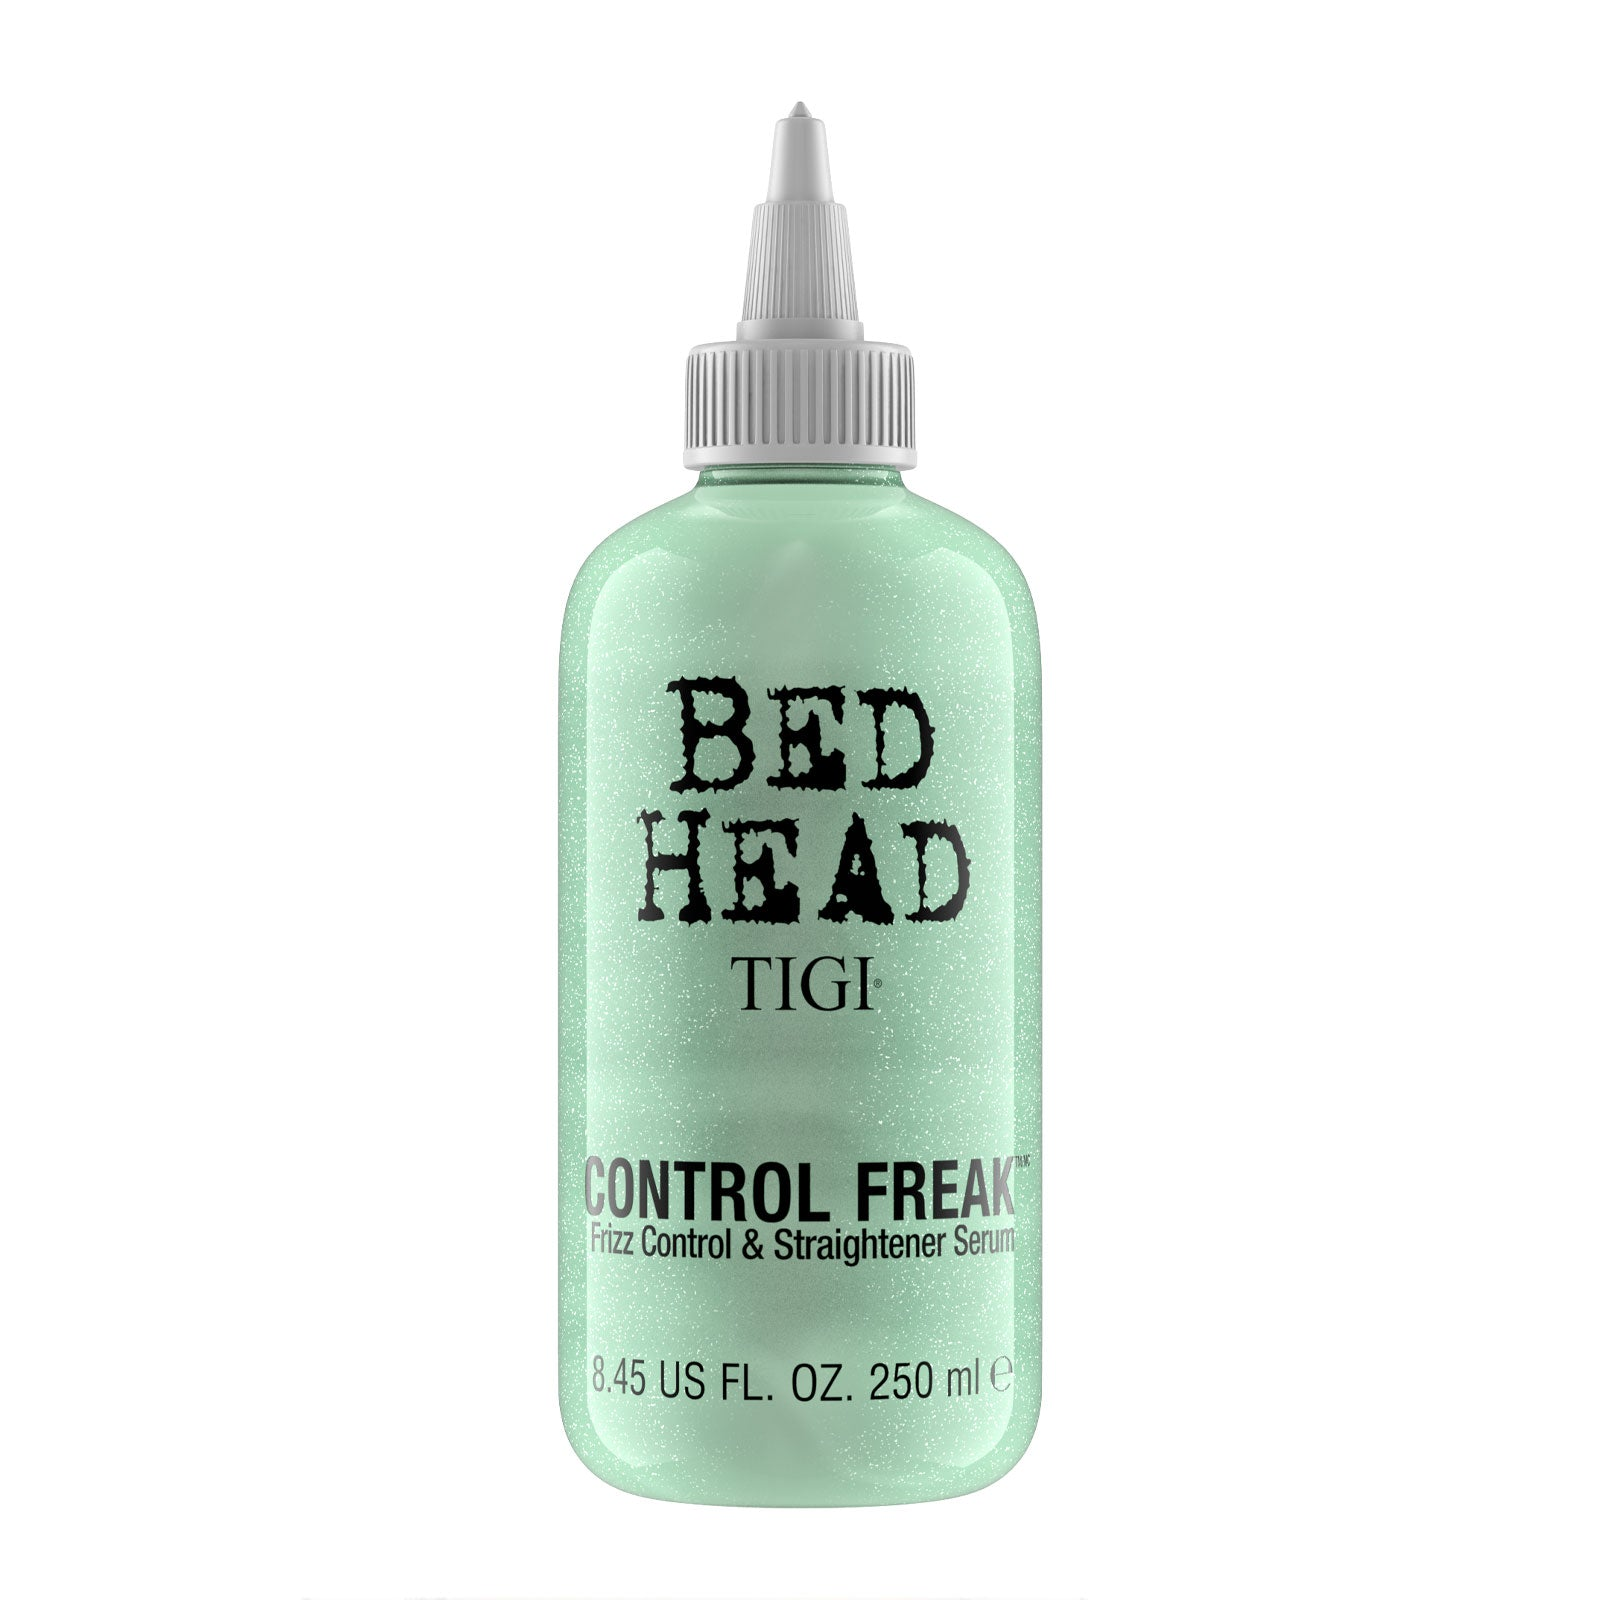 Bed Head by Tigi Control Freak Anti Frizz Serum for Smooth Shiny Hair 250ml